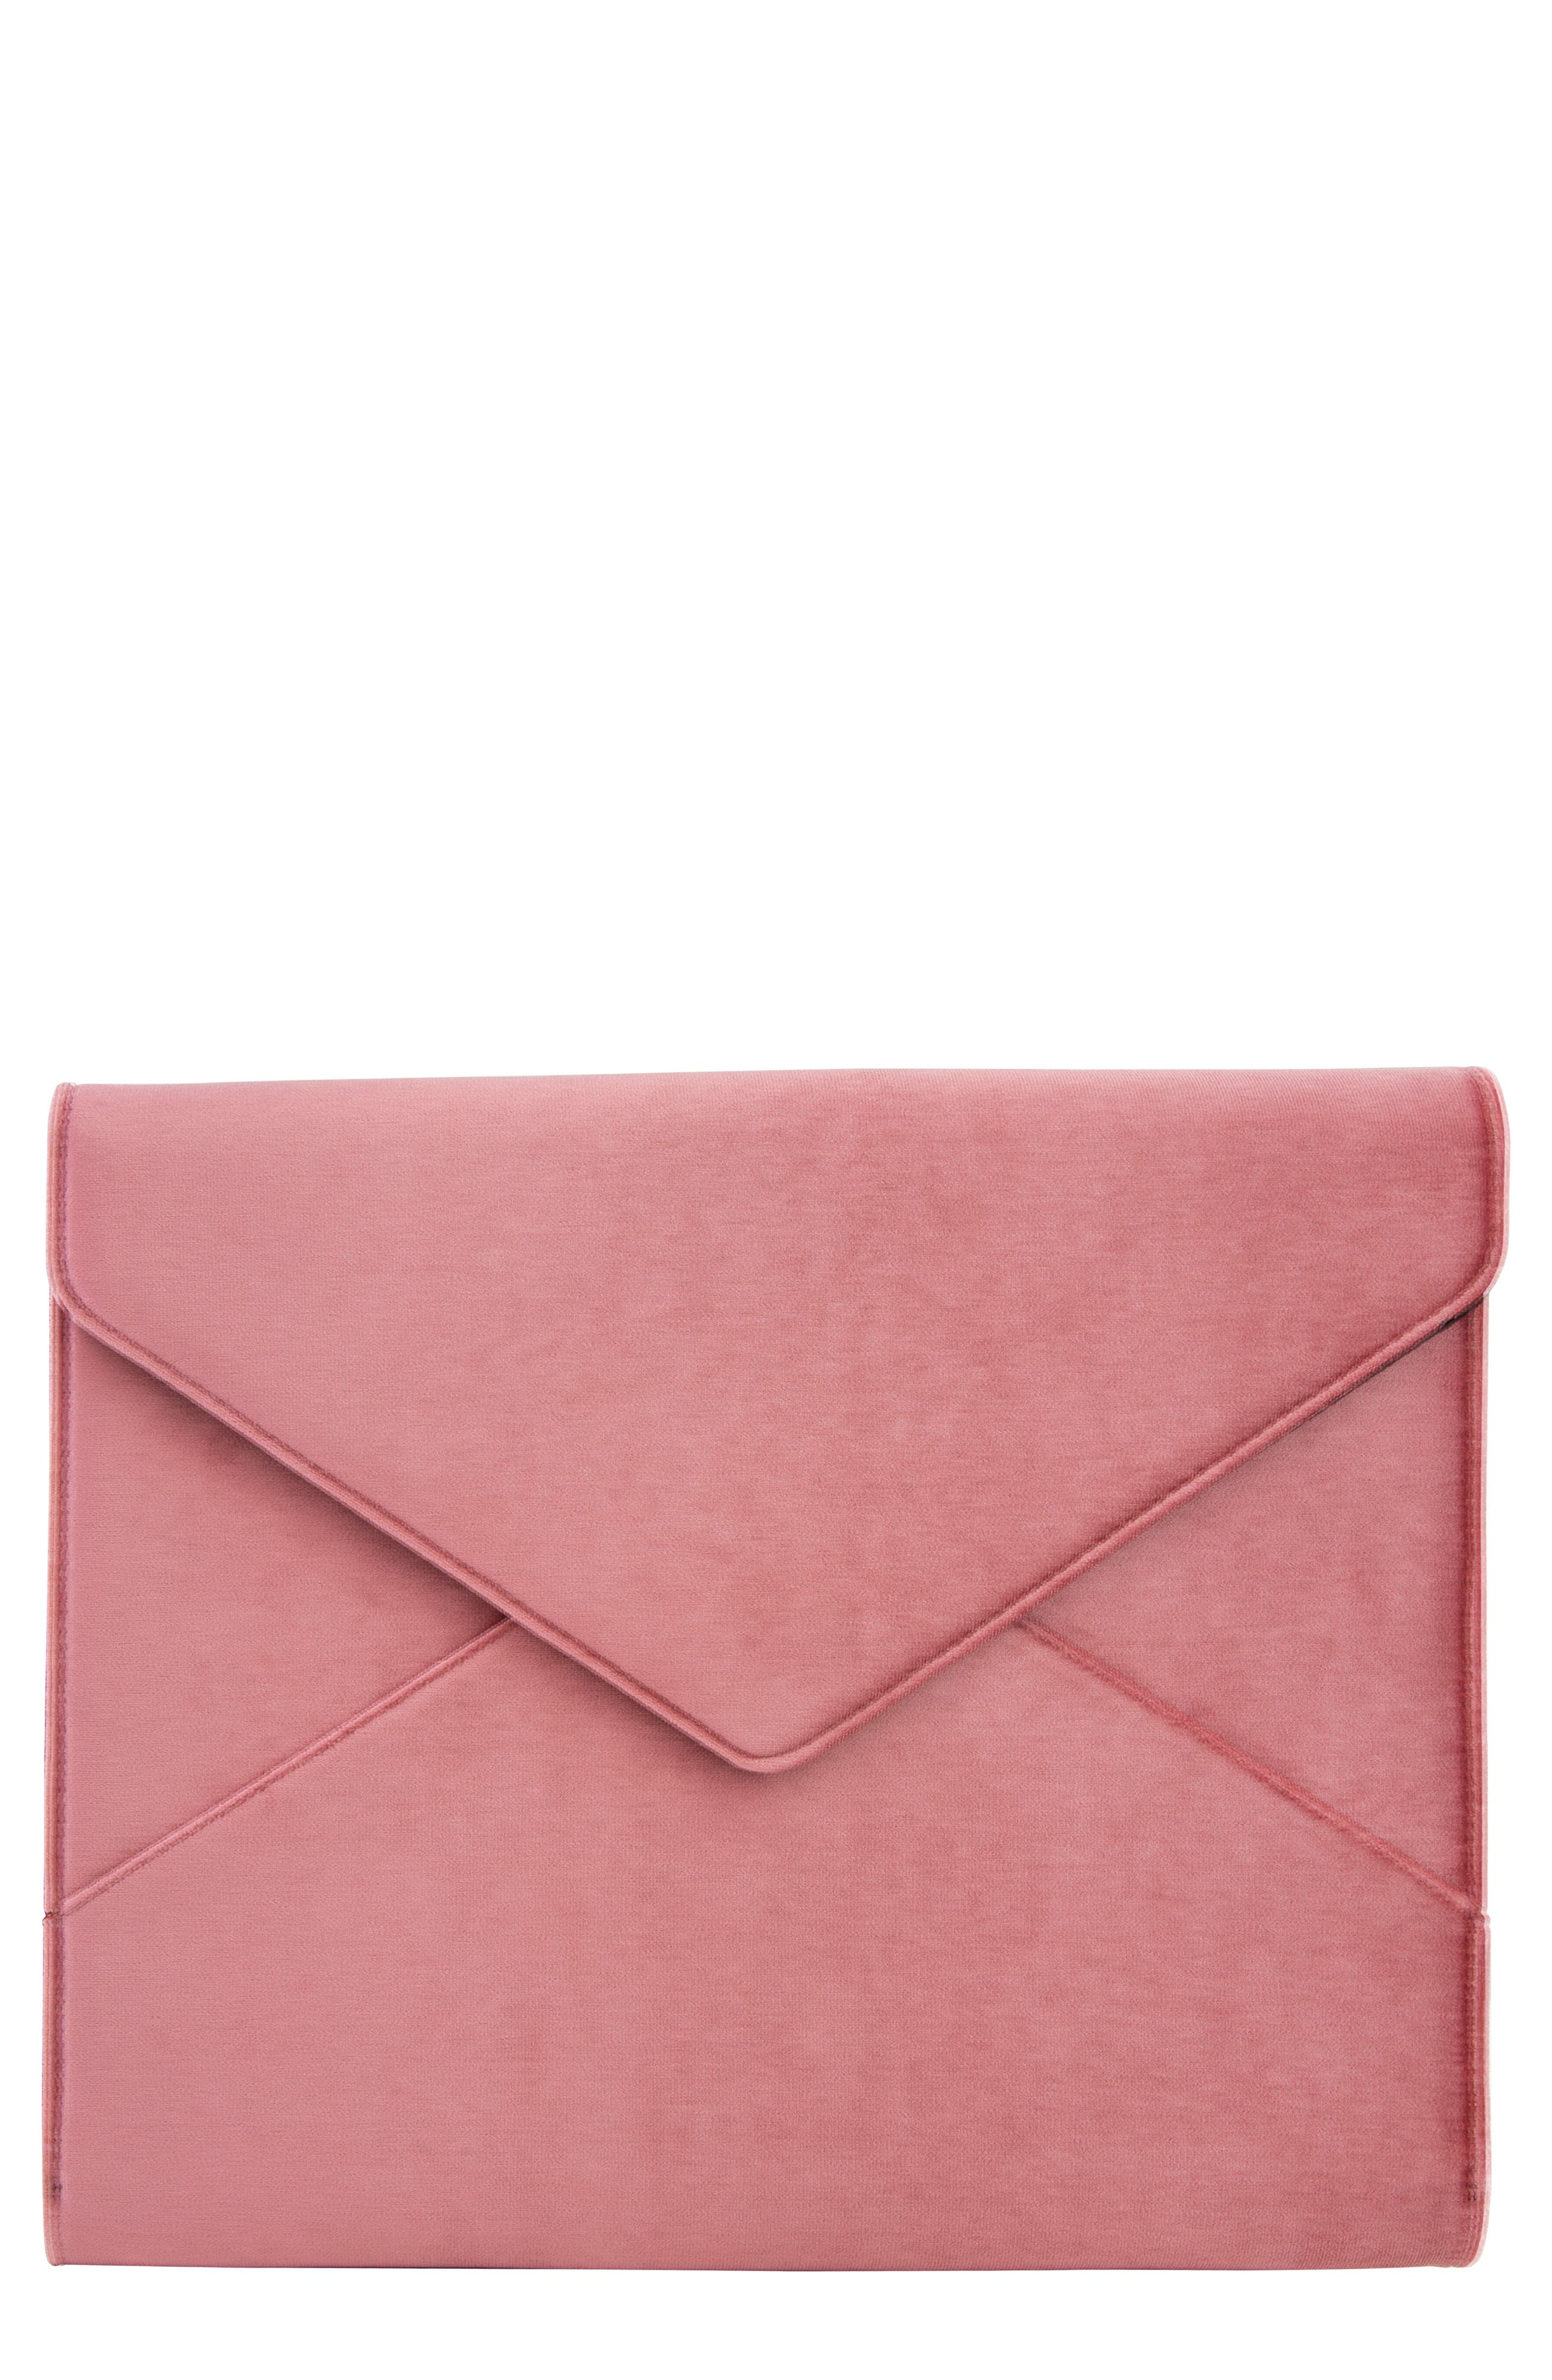 Main Image - Sonix Rose Velvet Laptop Clutch